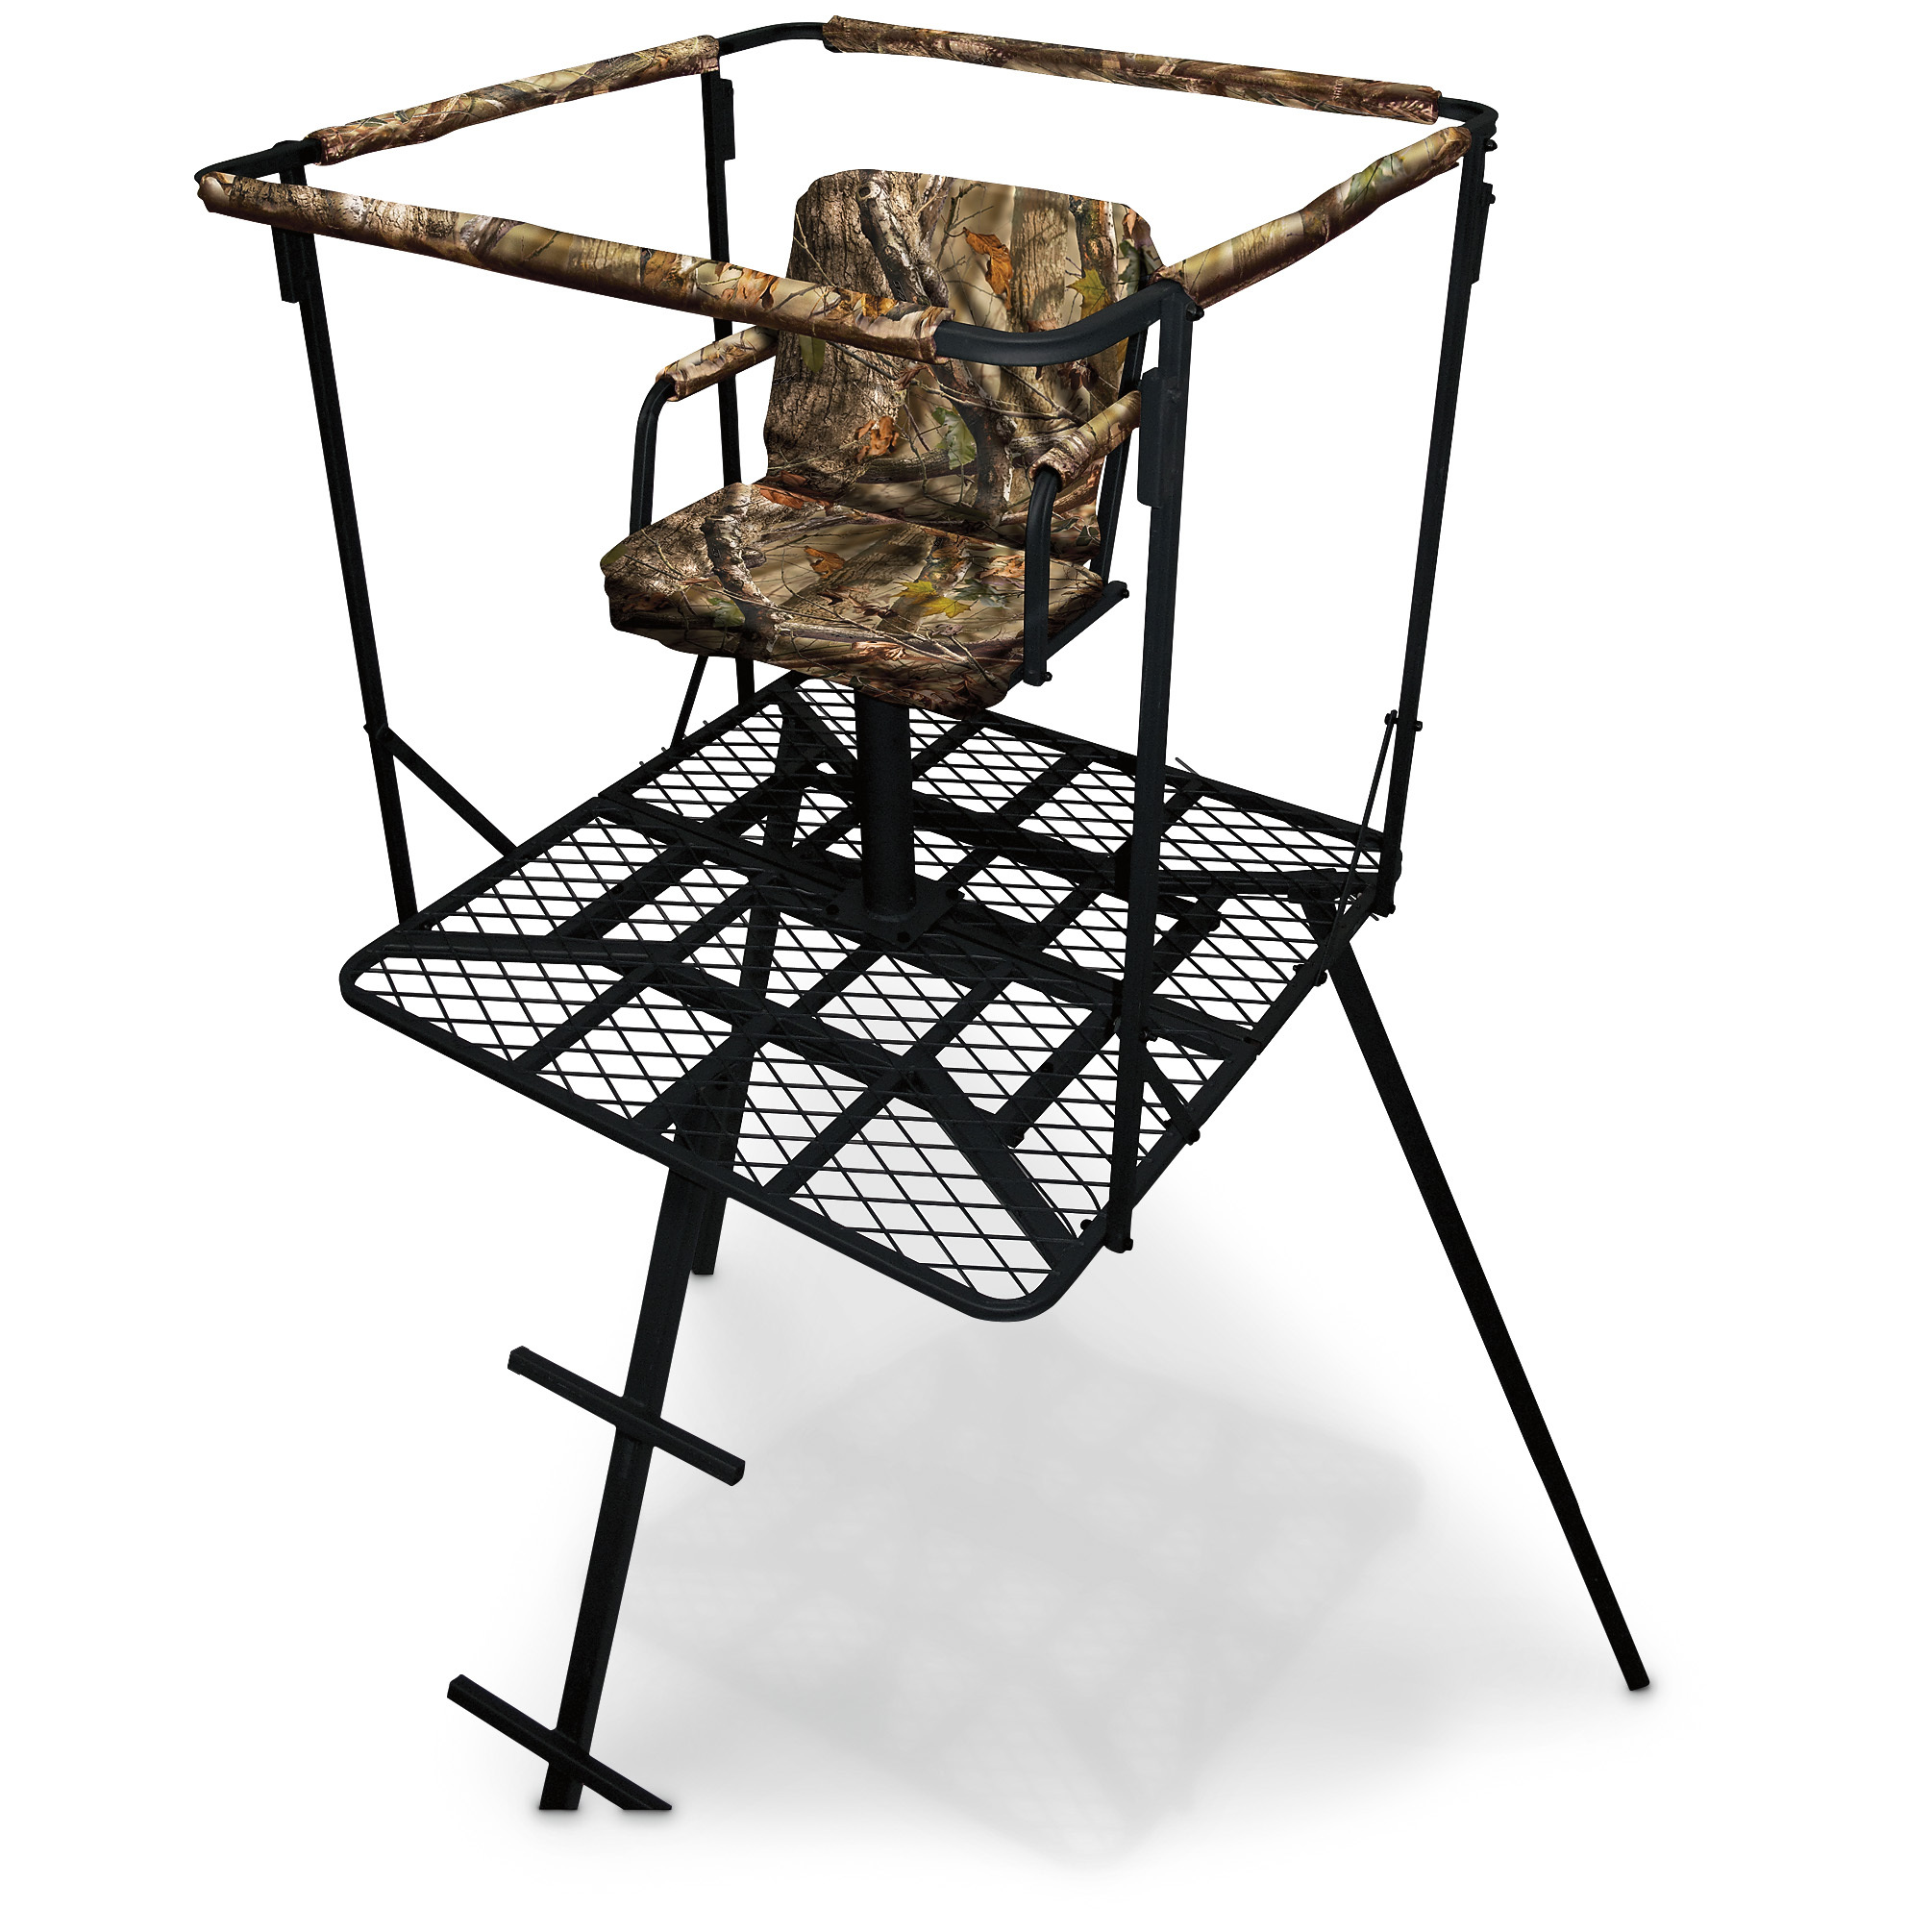 swivel hunting chair with armrests fishing bed covers sniper 16 39 outlaw tripod stand 179 99 thrill on